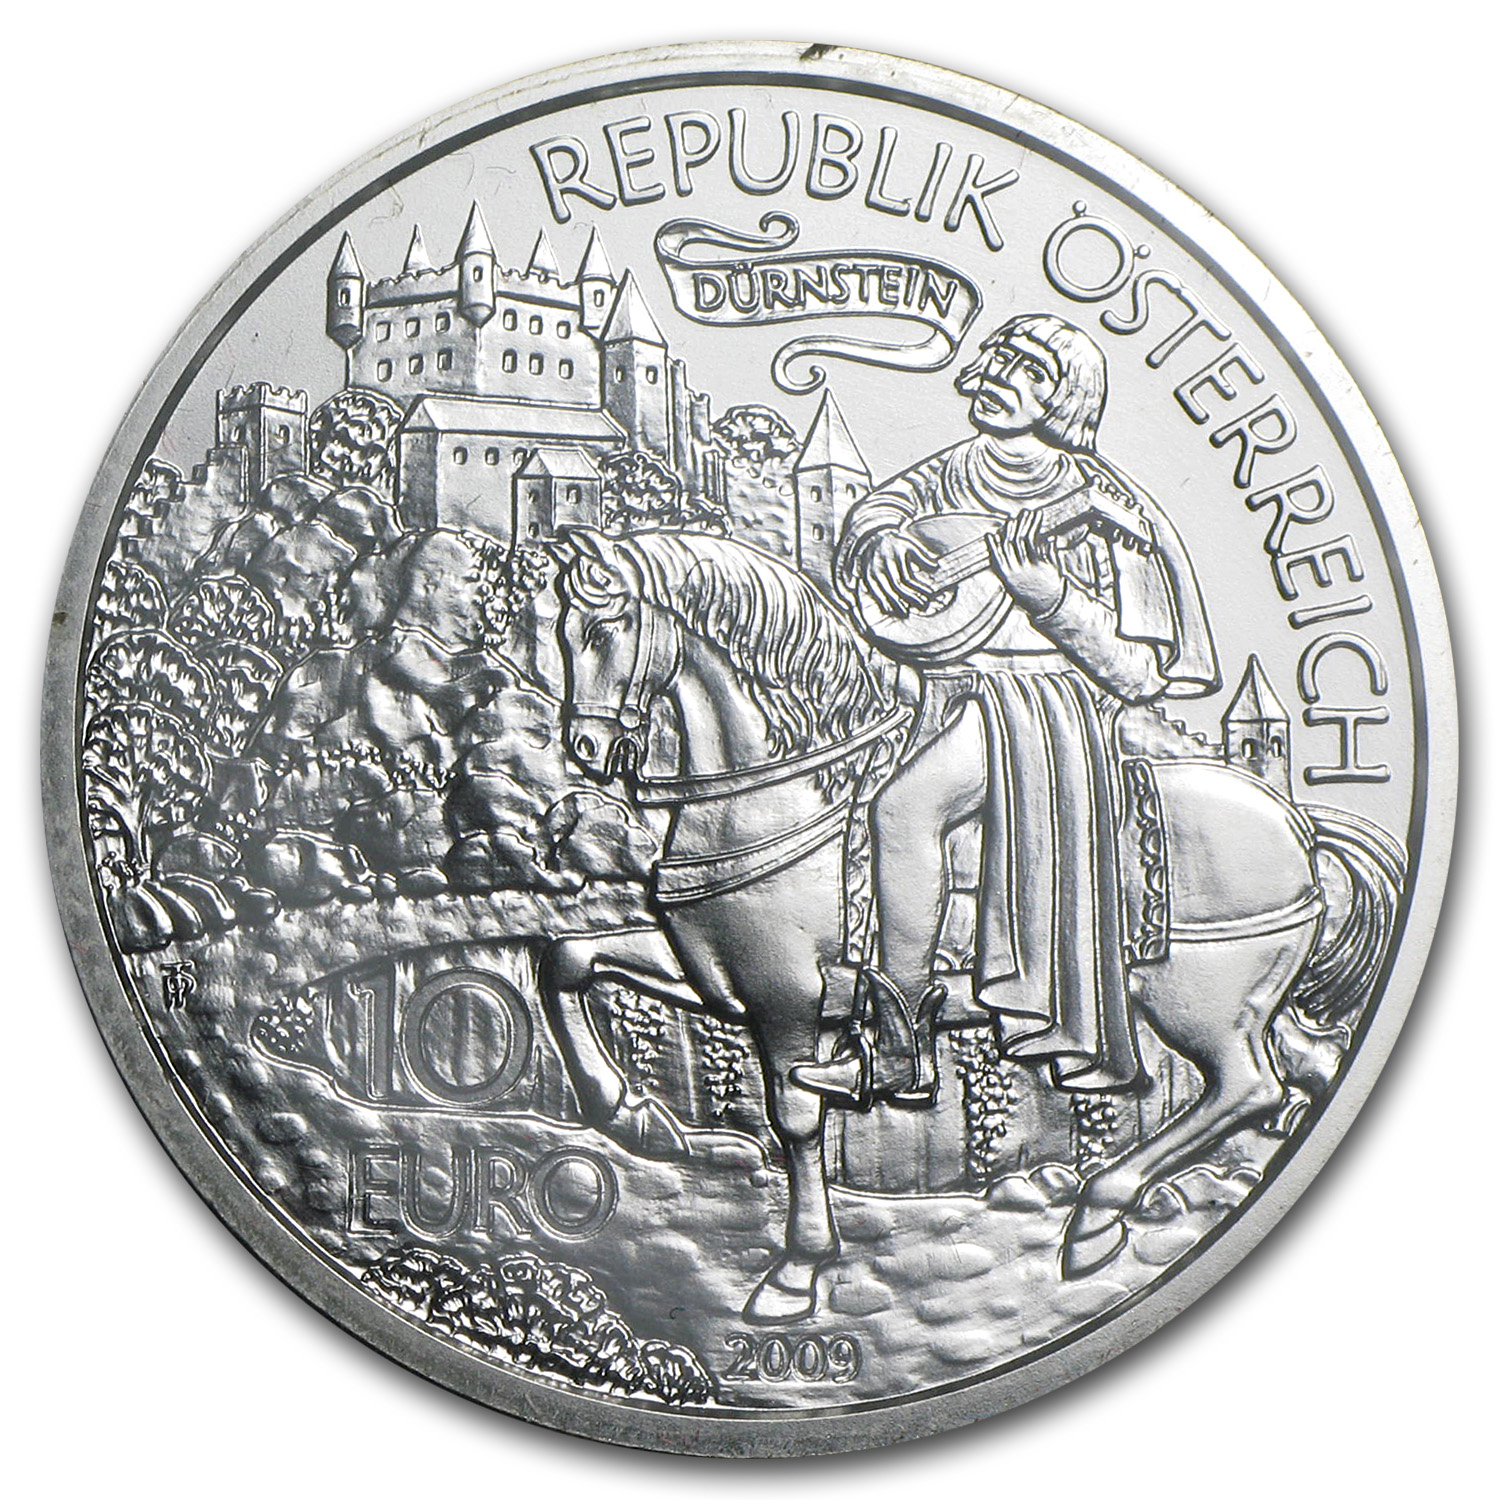 2009 Richard the Lionheart in Duernstein 10 Euro Silver ASW 0.475